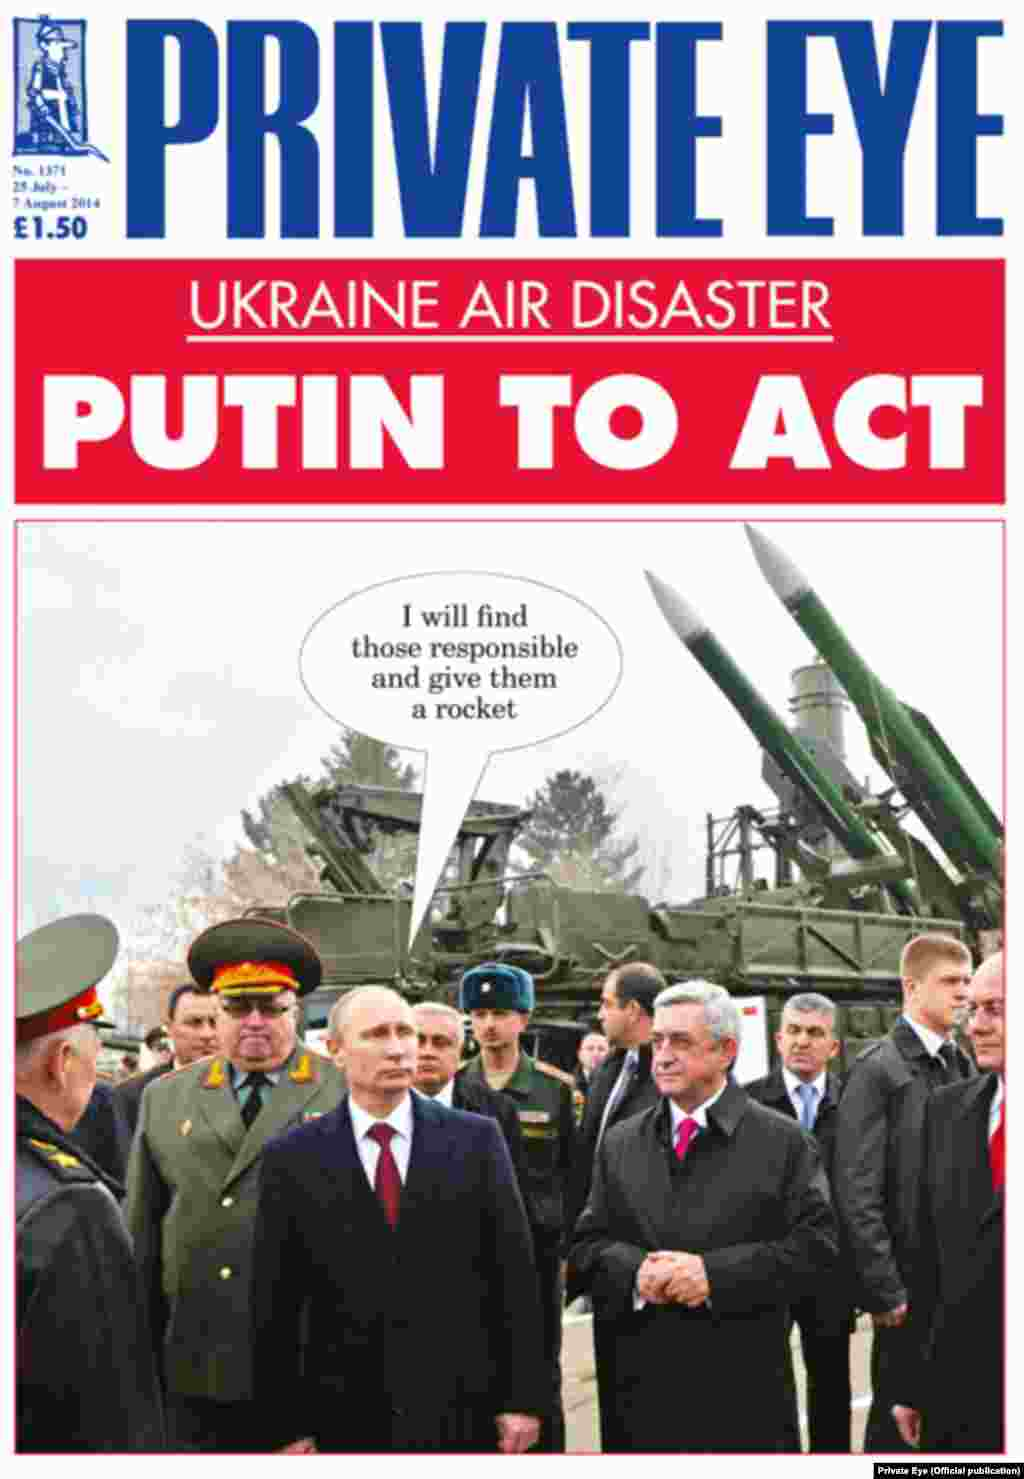 """The July 25 cover ofBritain's""""Private Eye"""" features a photo of Putin against the backdrop of the Buk missile-defense system, suspected of bringing down Malaysia Airlines flight MH17, and captions it, """"I will find those responsible and give them a rocket."""""""